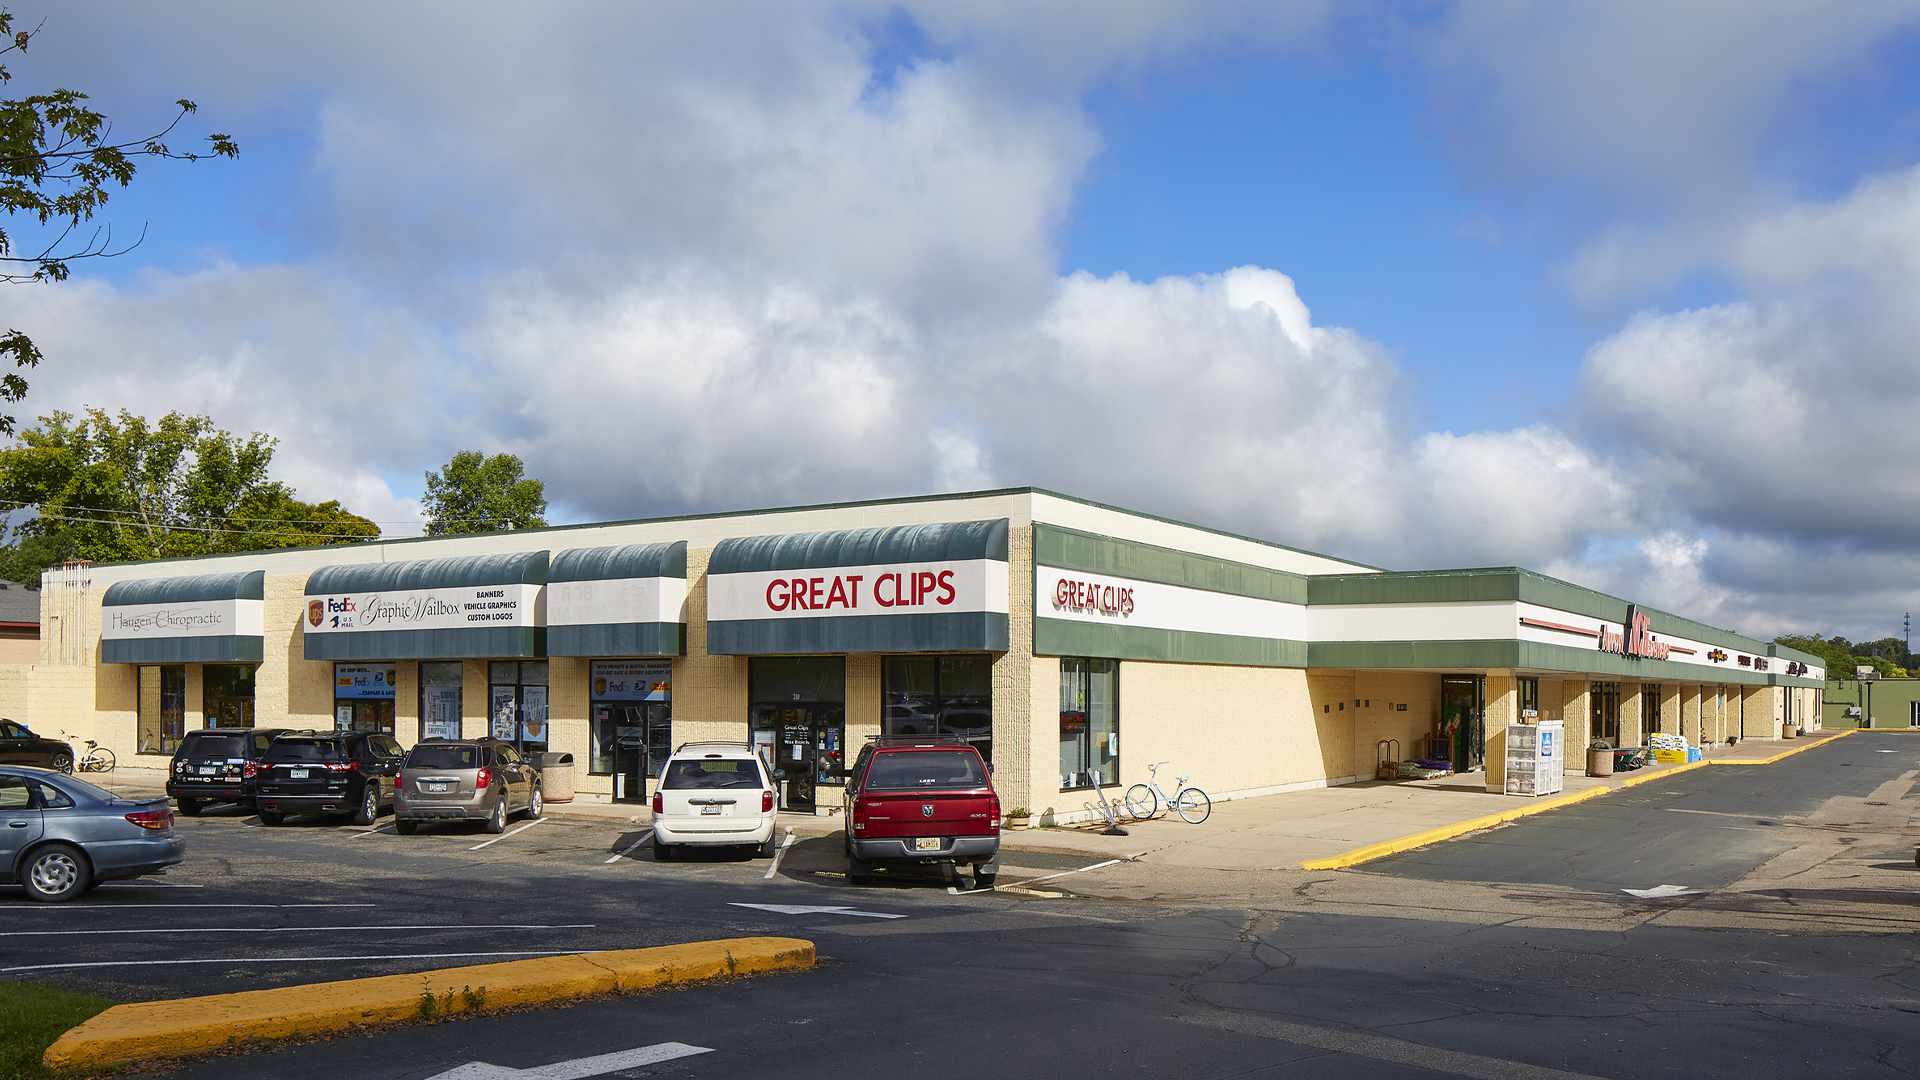 River Park Retail Strip Mall Northfield MN view featuring Great Clips